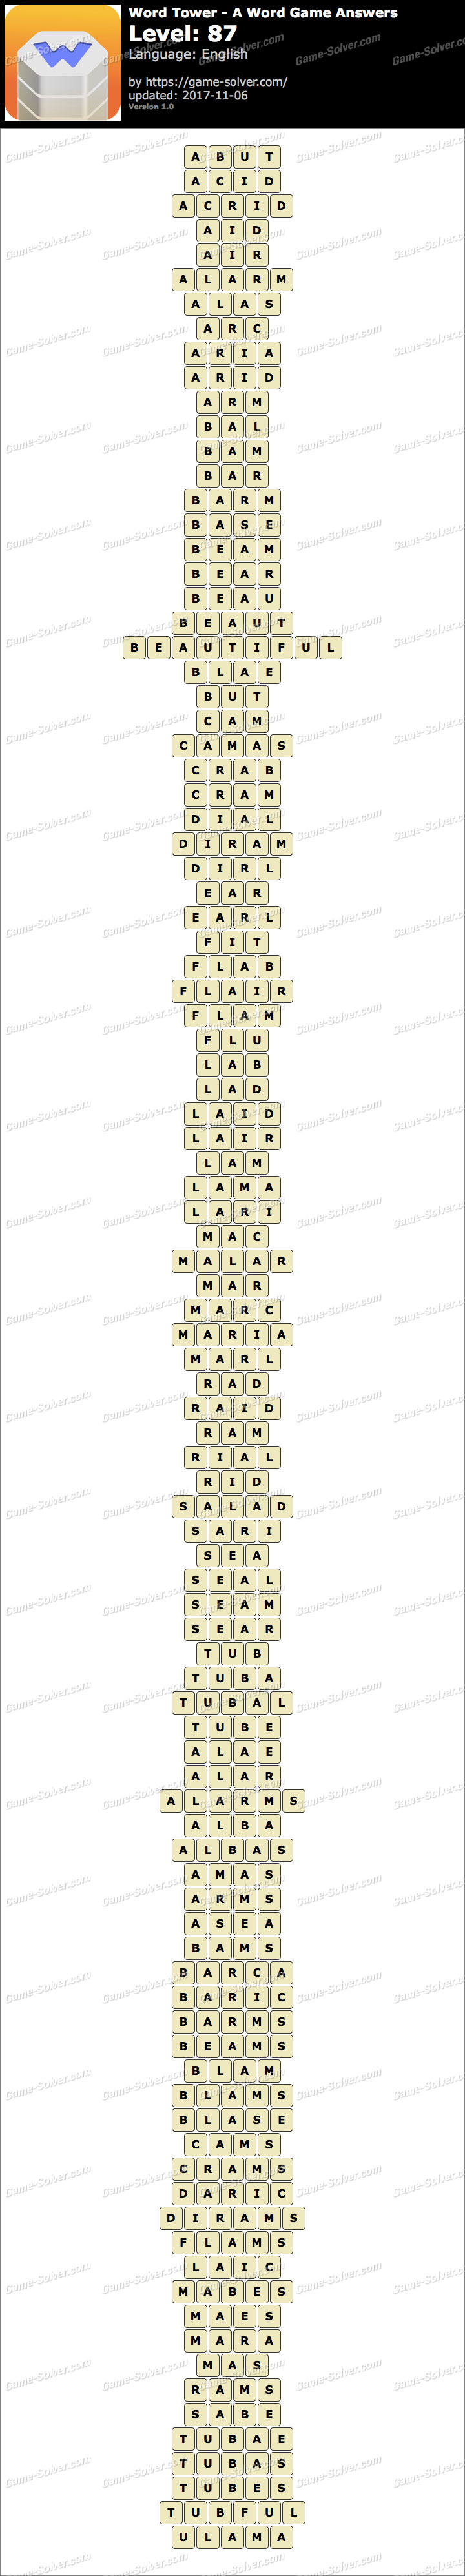 Word Tower Level 87 Answers